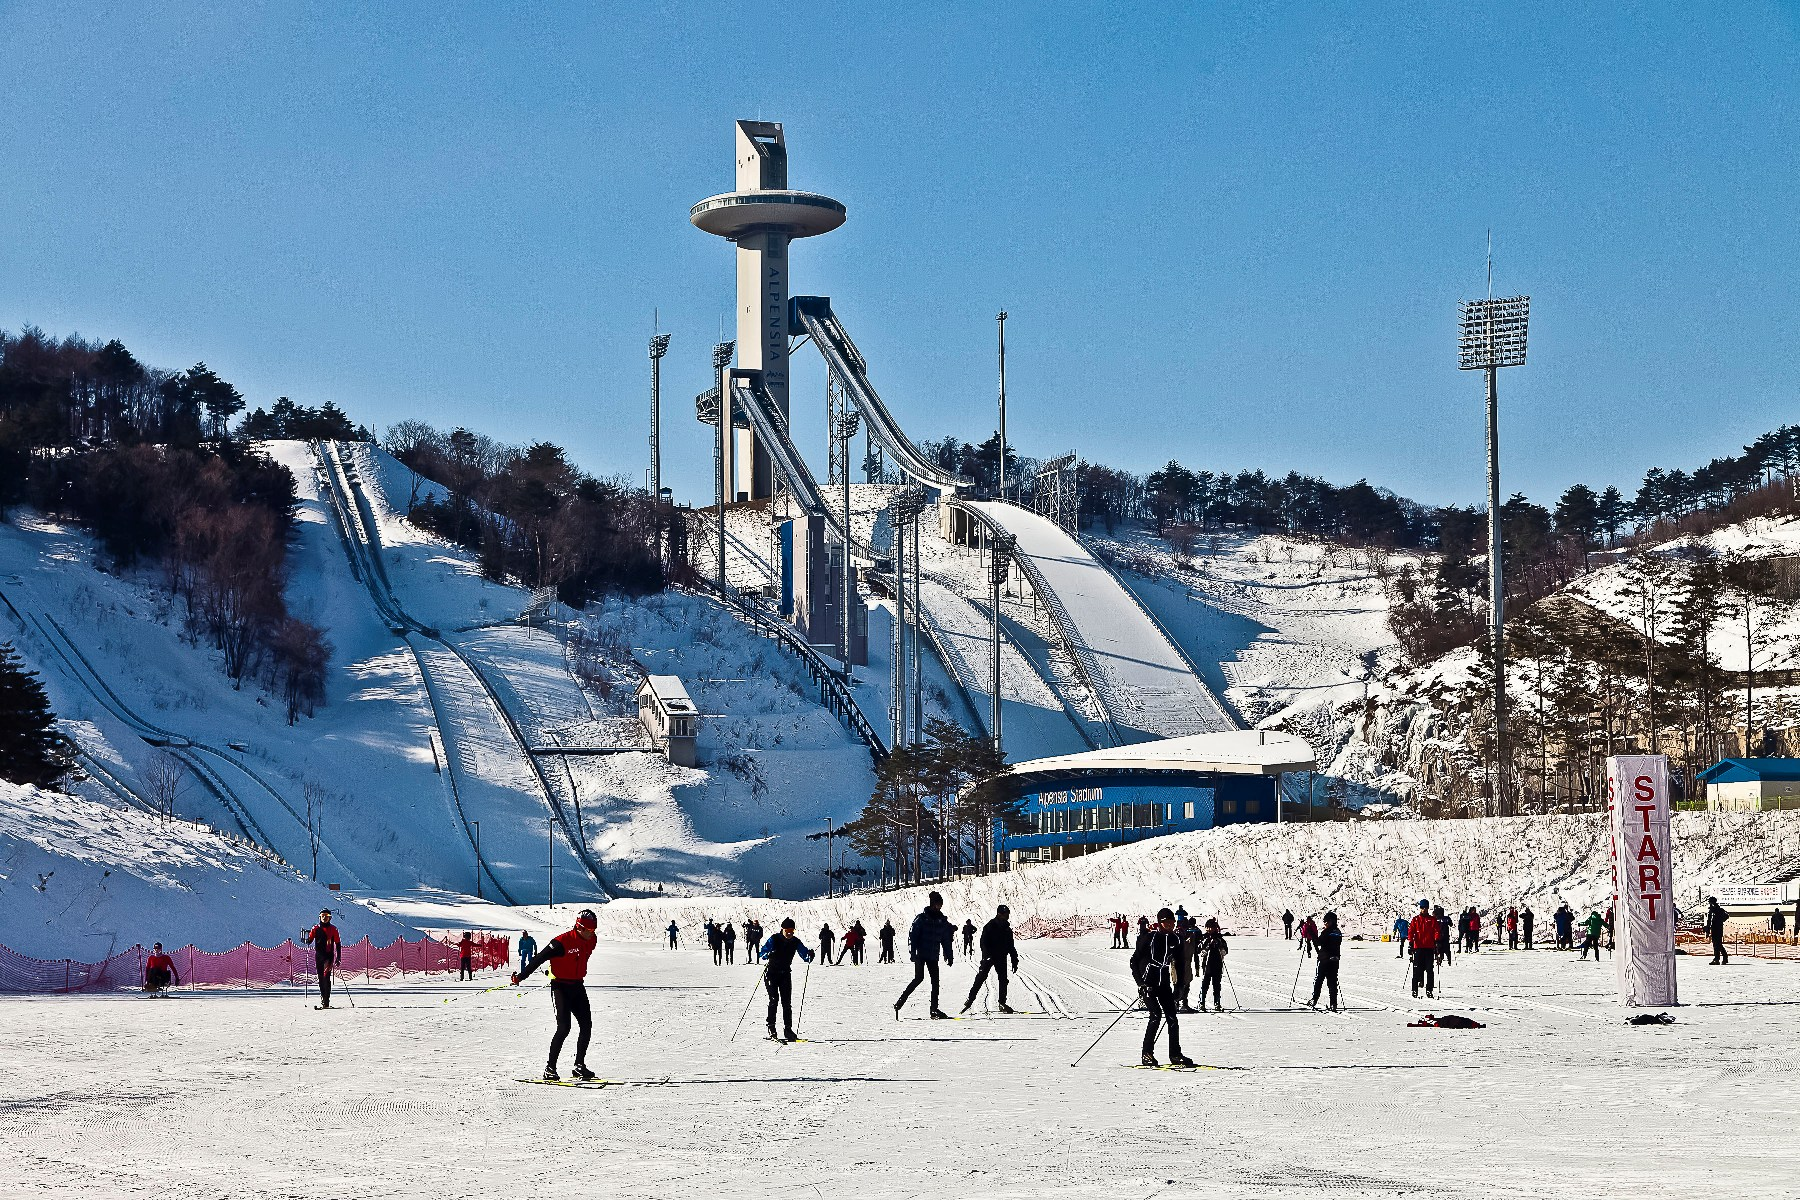 SWA, in collaboration with Space Group architects, created a compact solution that sculpted the K125 and K98 ski jumps with minimal grading, married a Biathlon stadium with a pre-existing Biathlon shooting range, and fit a Cross Country stadium between the two.  Image courtesy Tom Fox SWA Group.